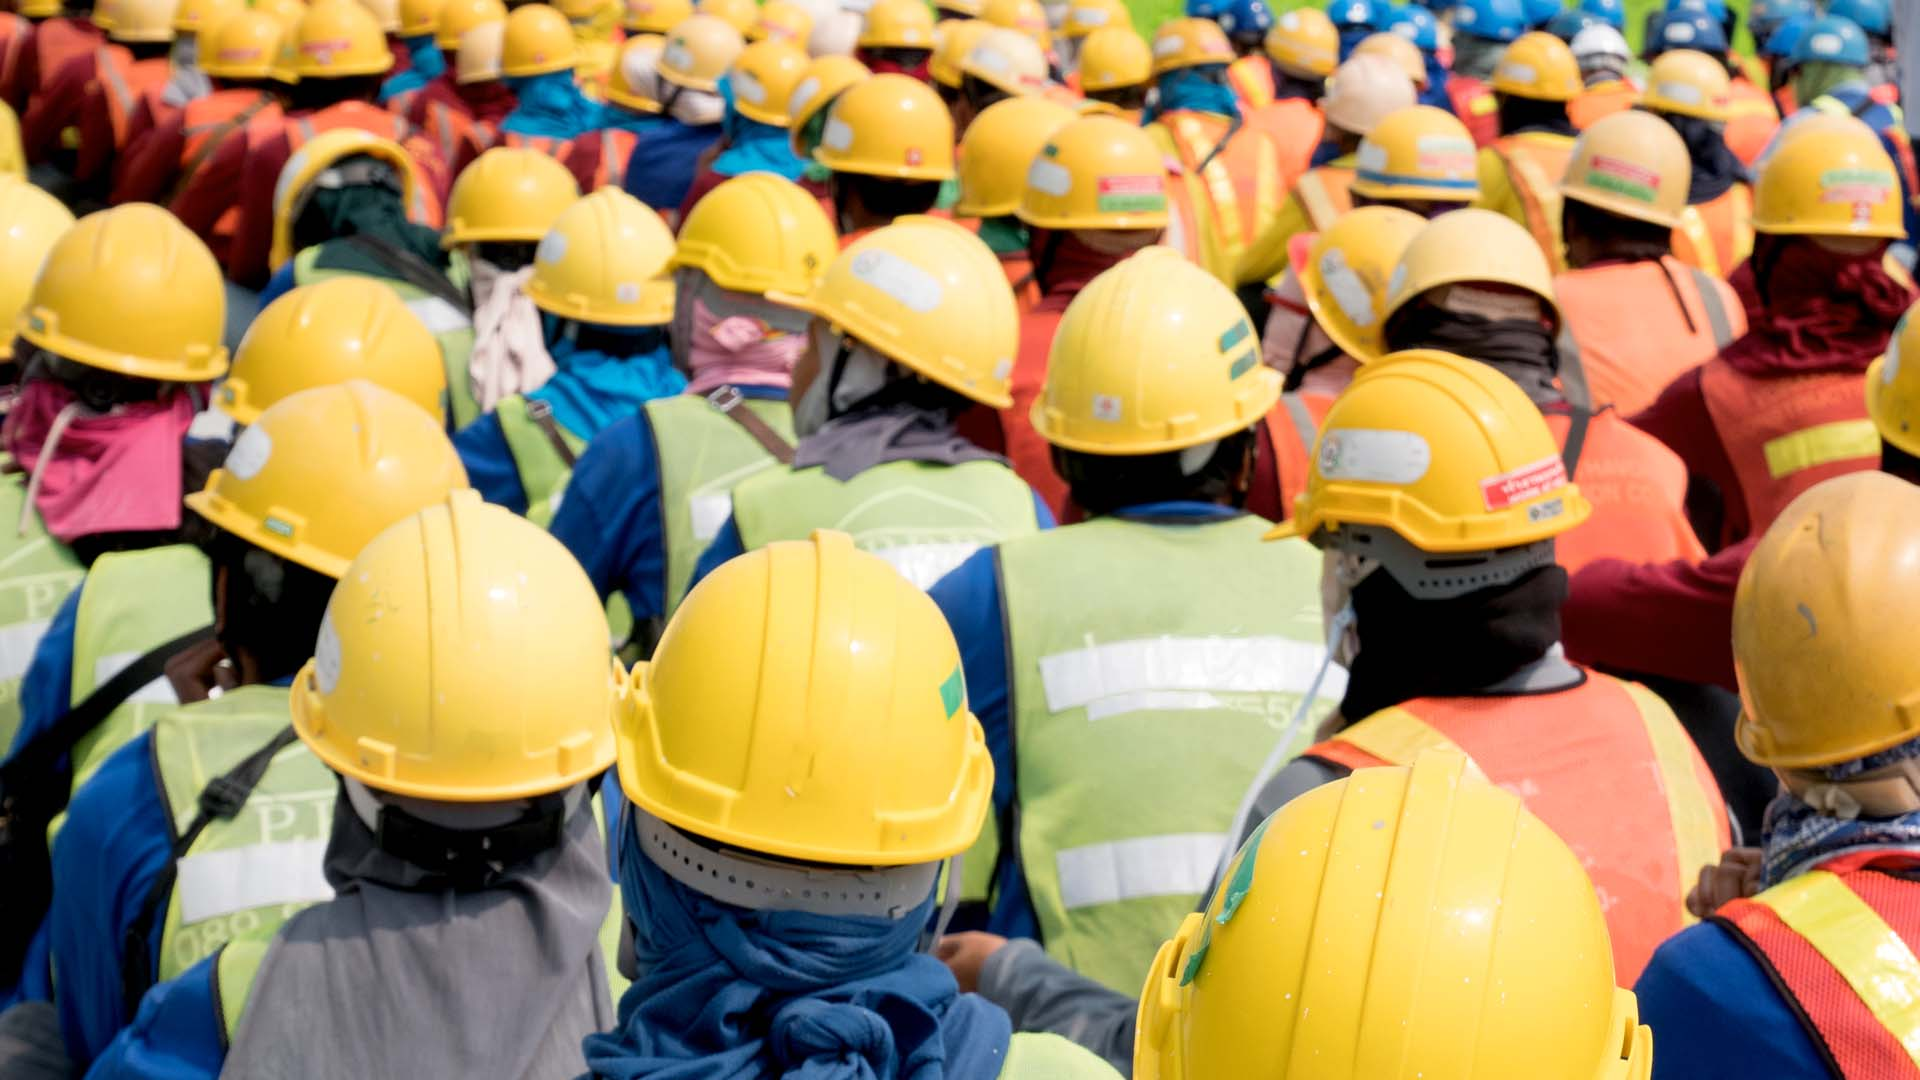 5 Top Ways to Improve Your Construction Safety Culture